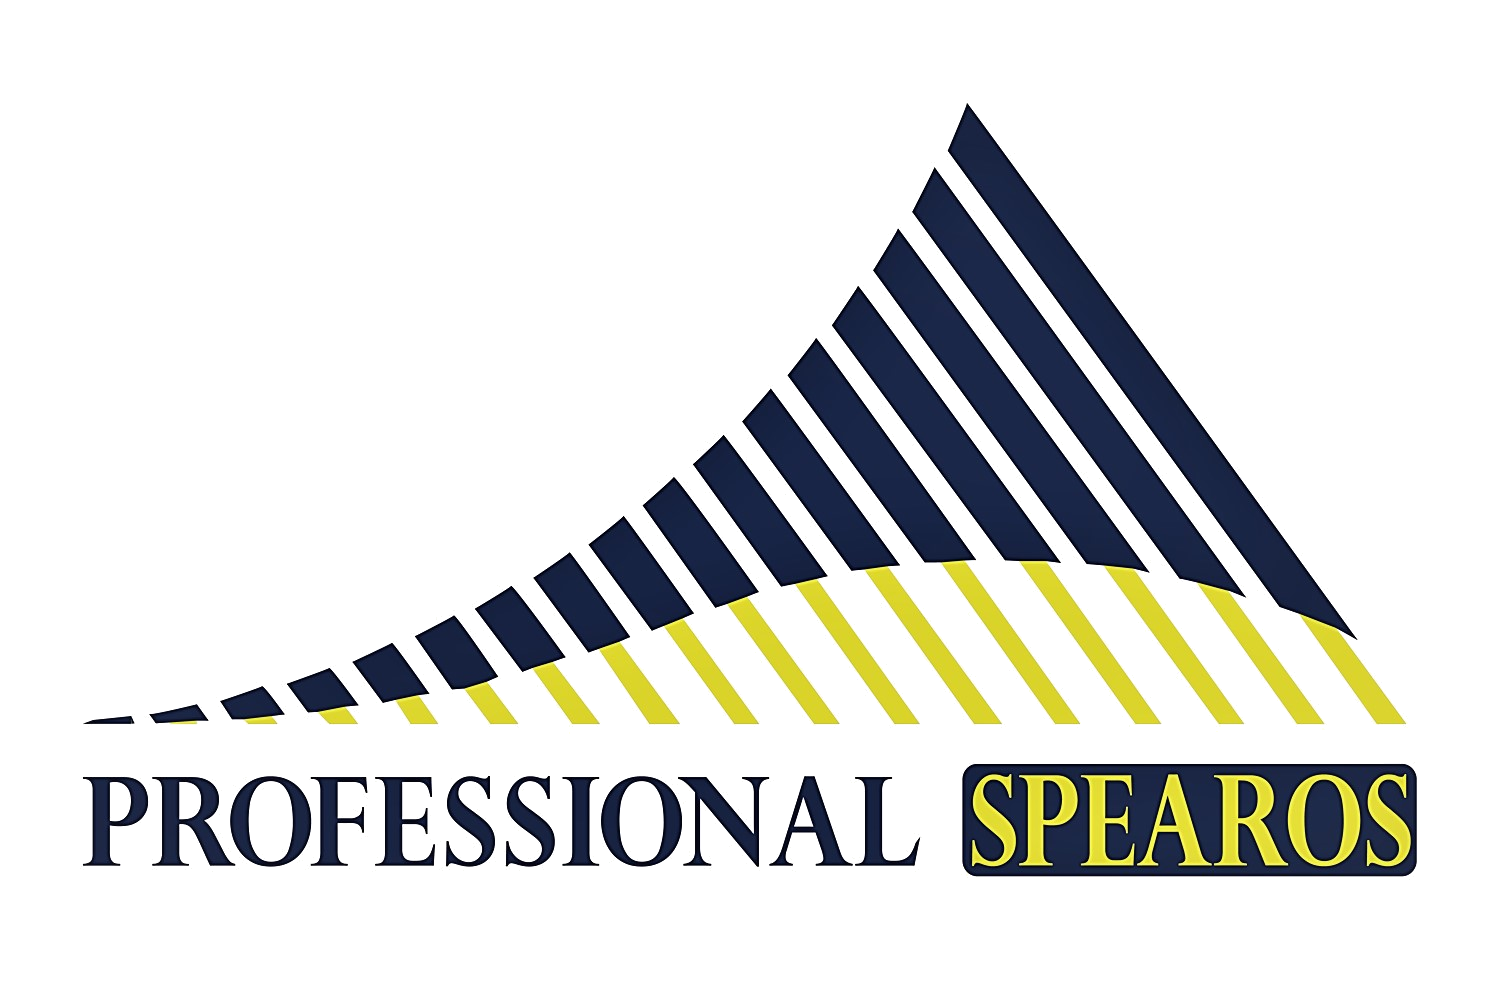 ProfessionalSpearos